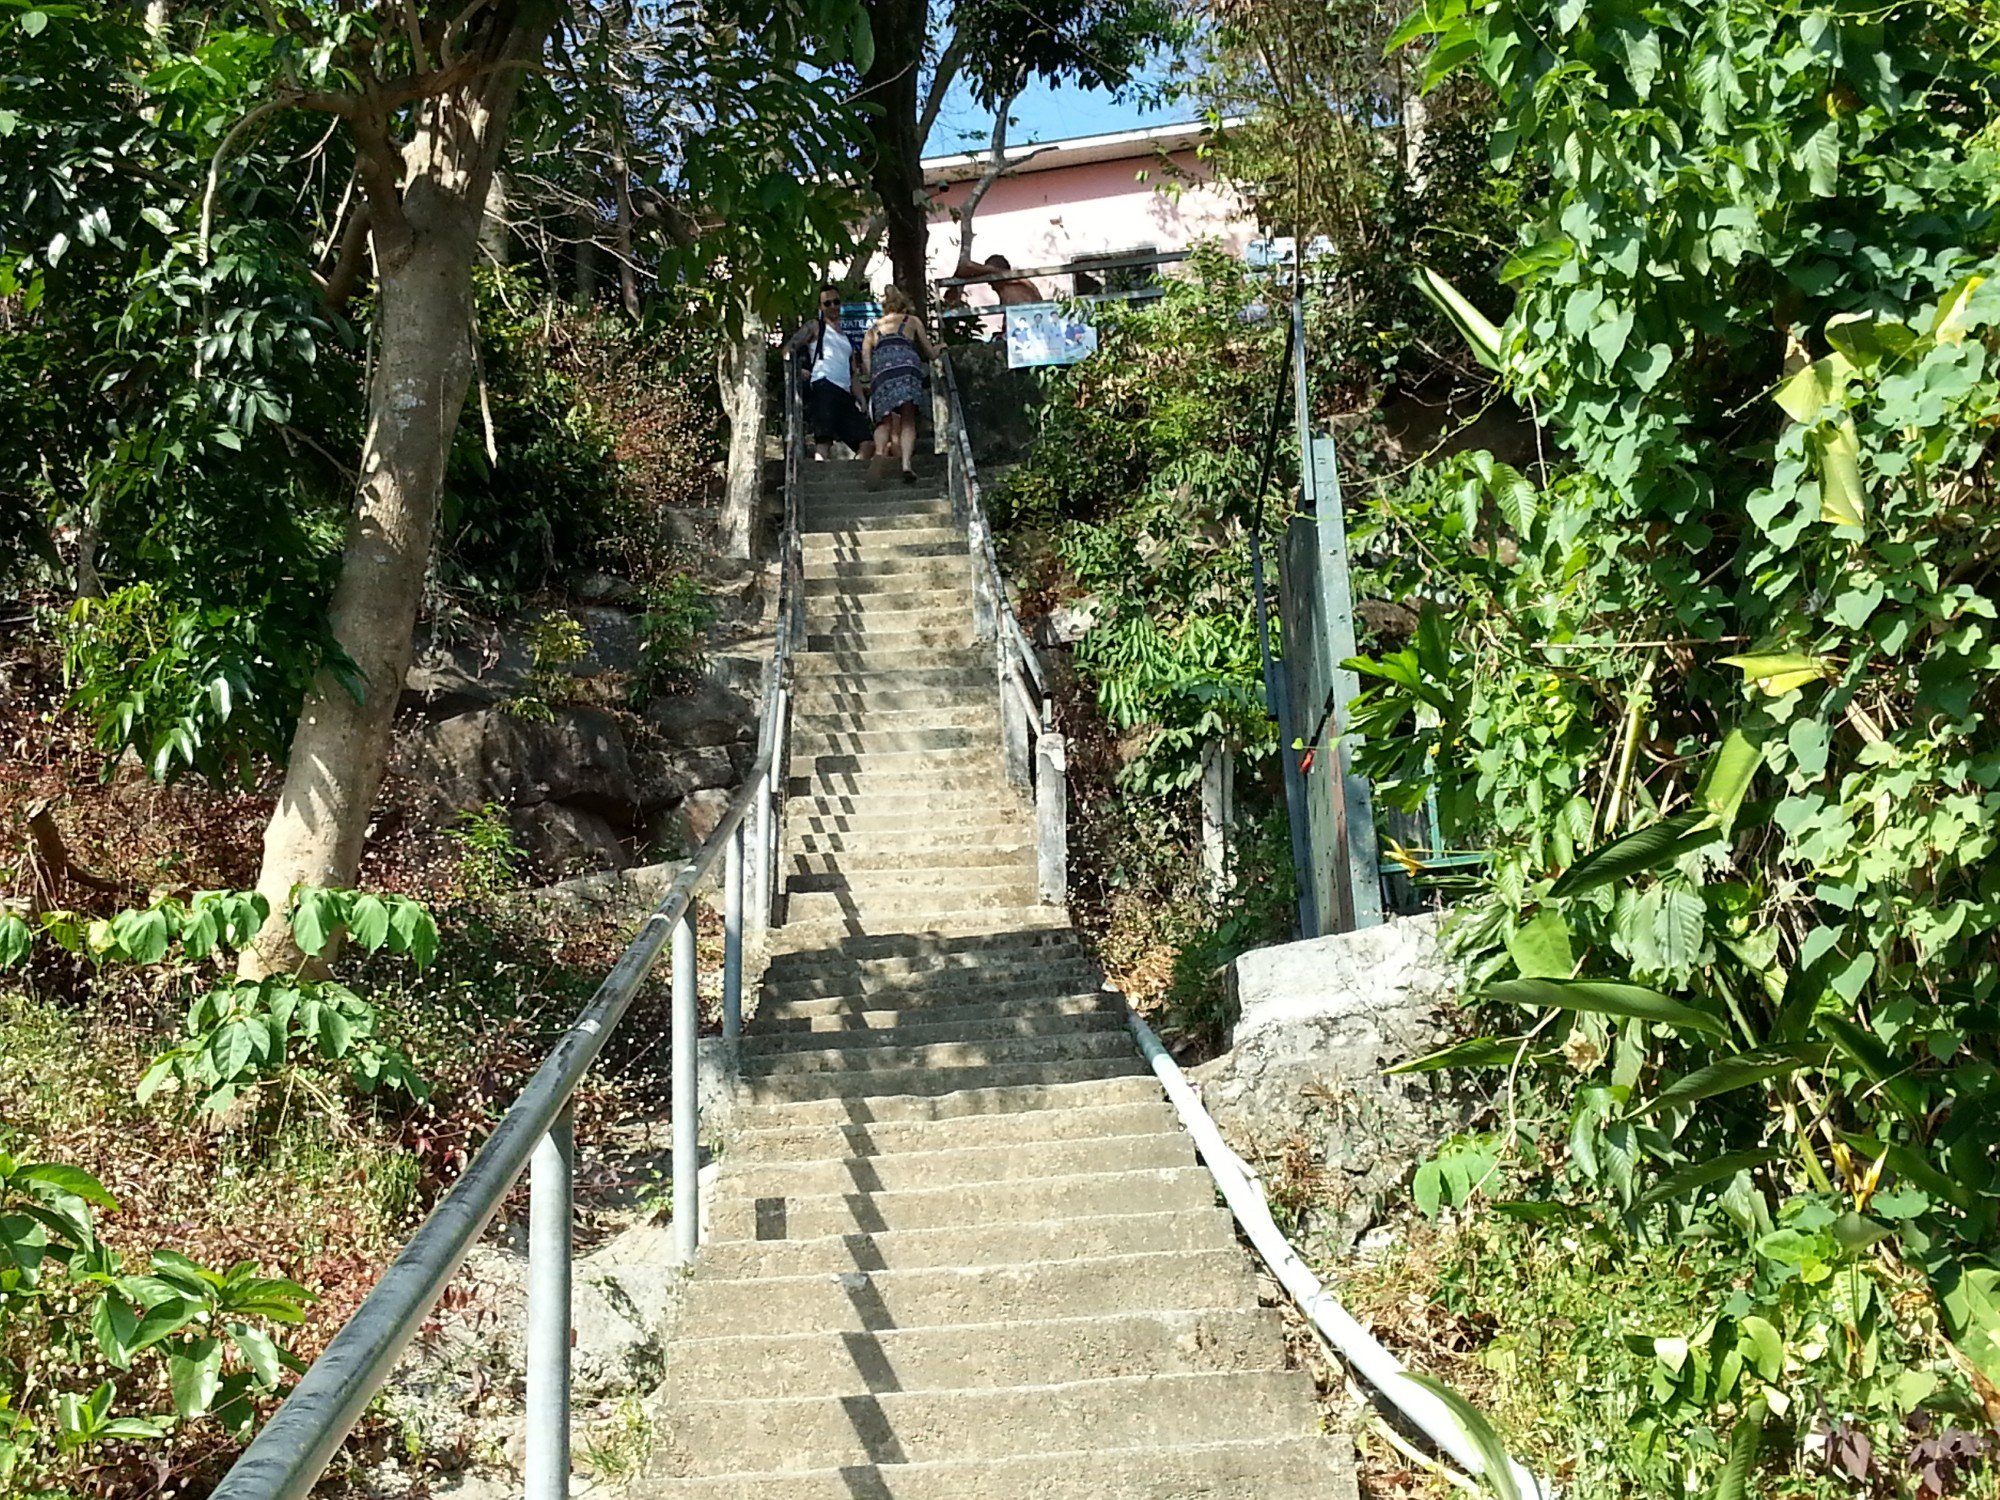 Stairs up to Koh Phi Phi Viewpoint